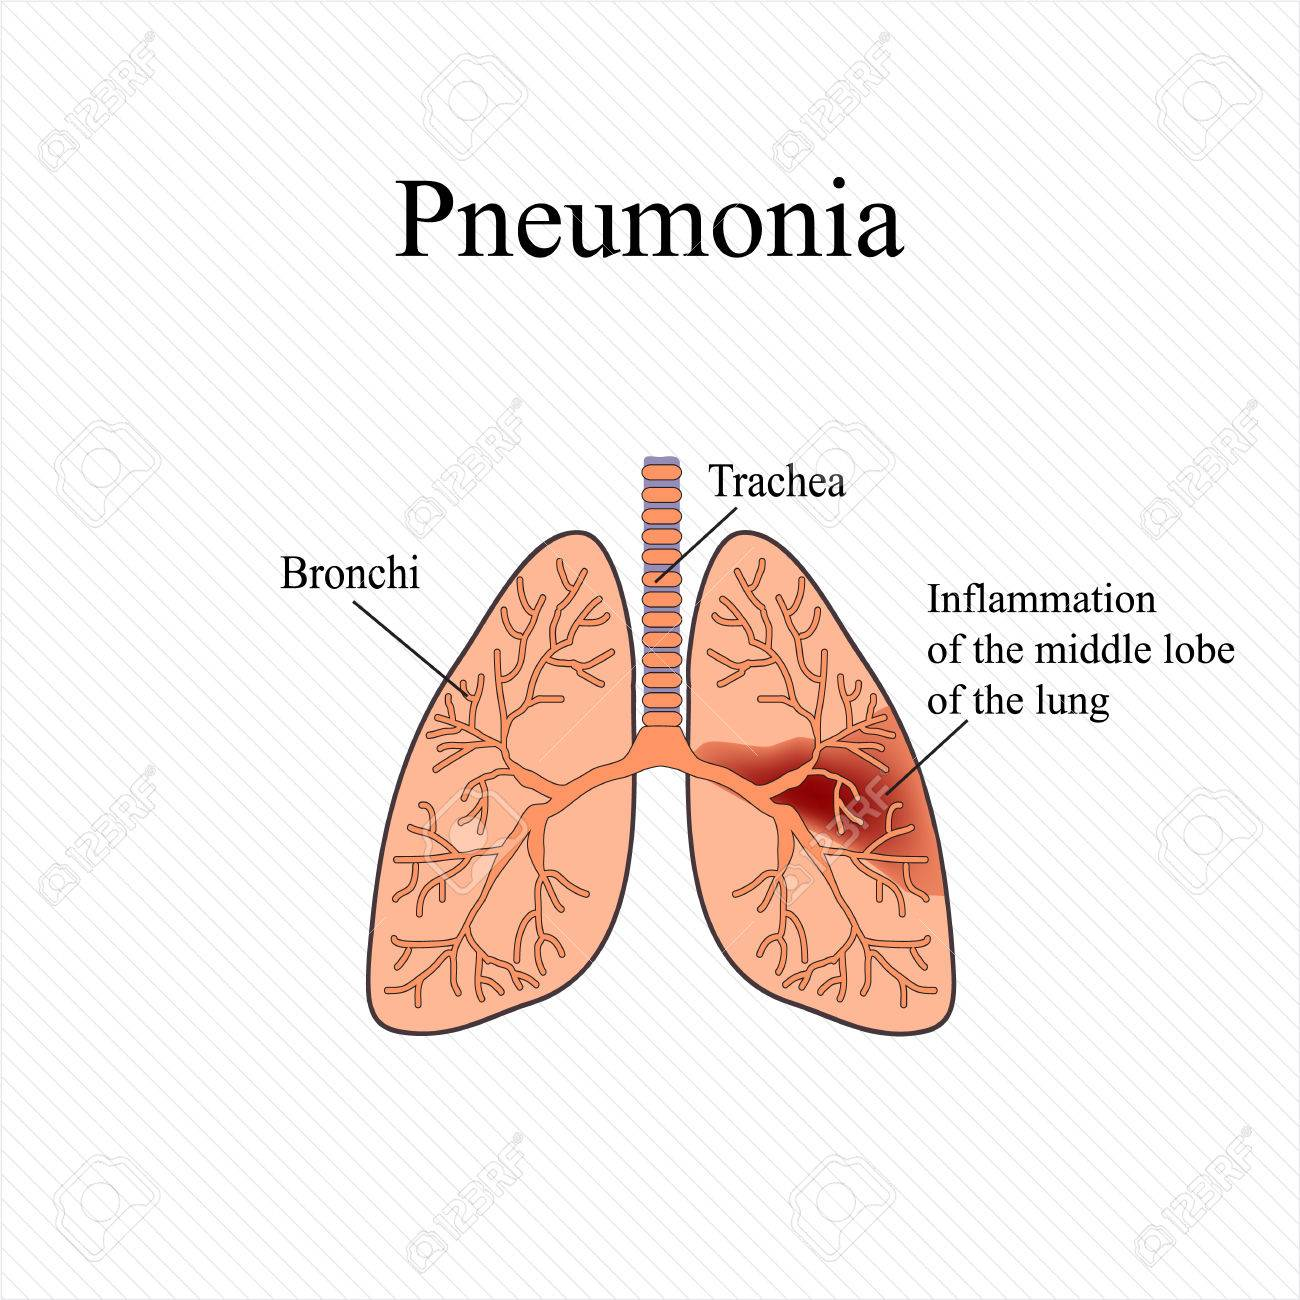 Pneumonia The Anatomical Structure Of The Human Lung Inflammation